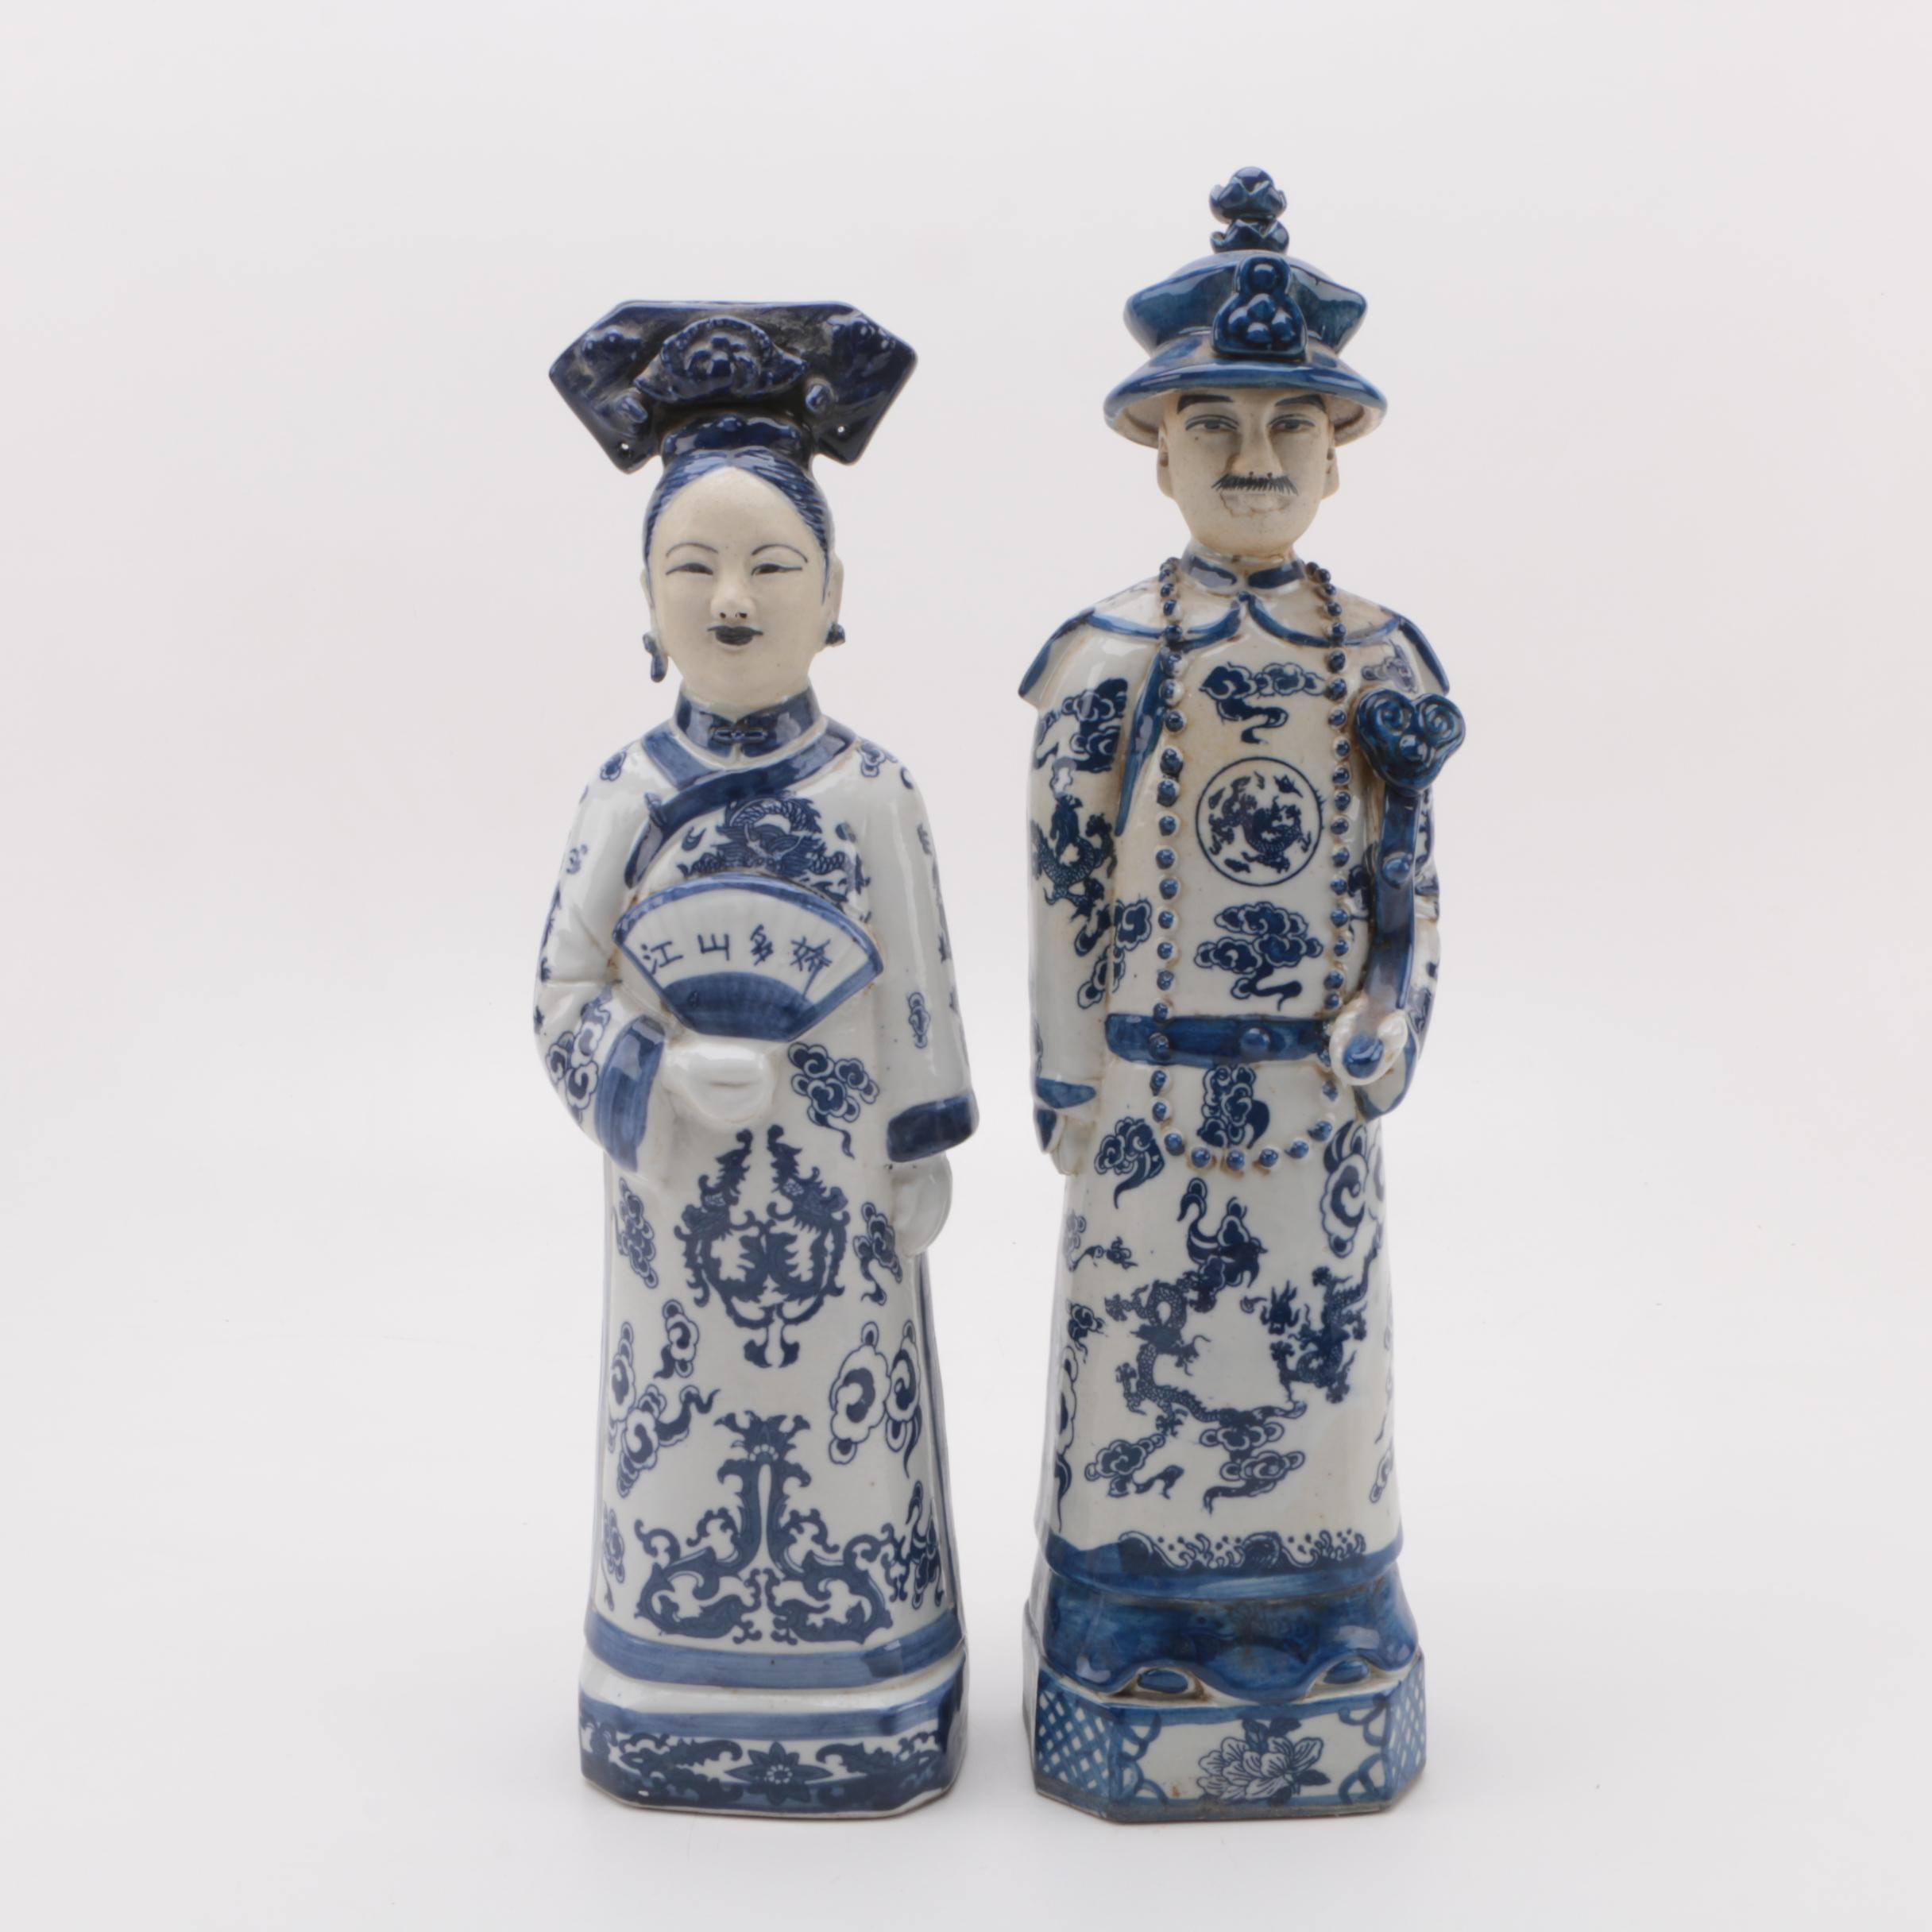 Chinese Emperor and Empress Porcelain Figurines